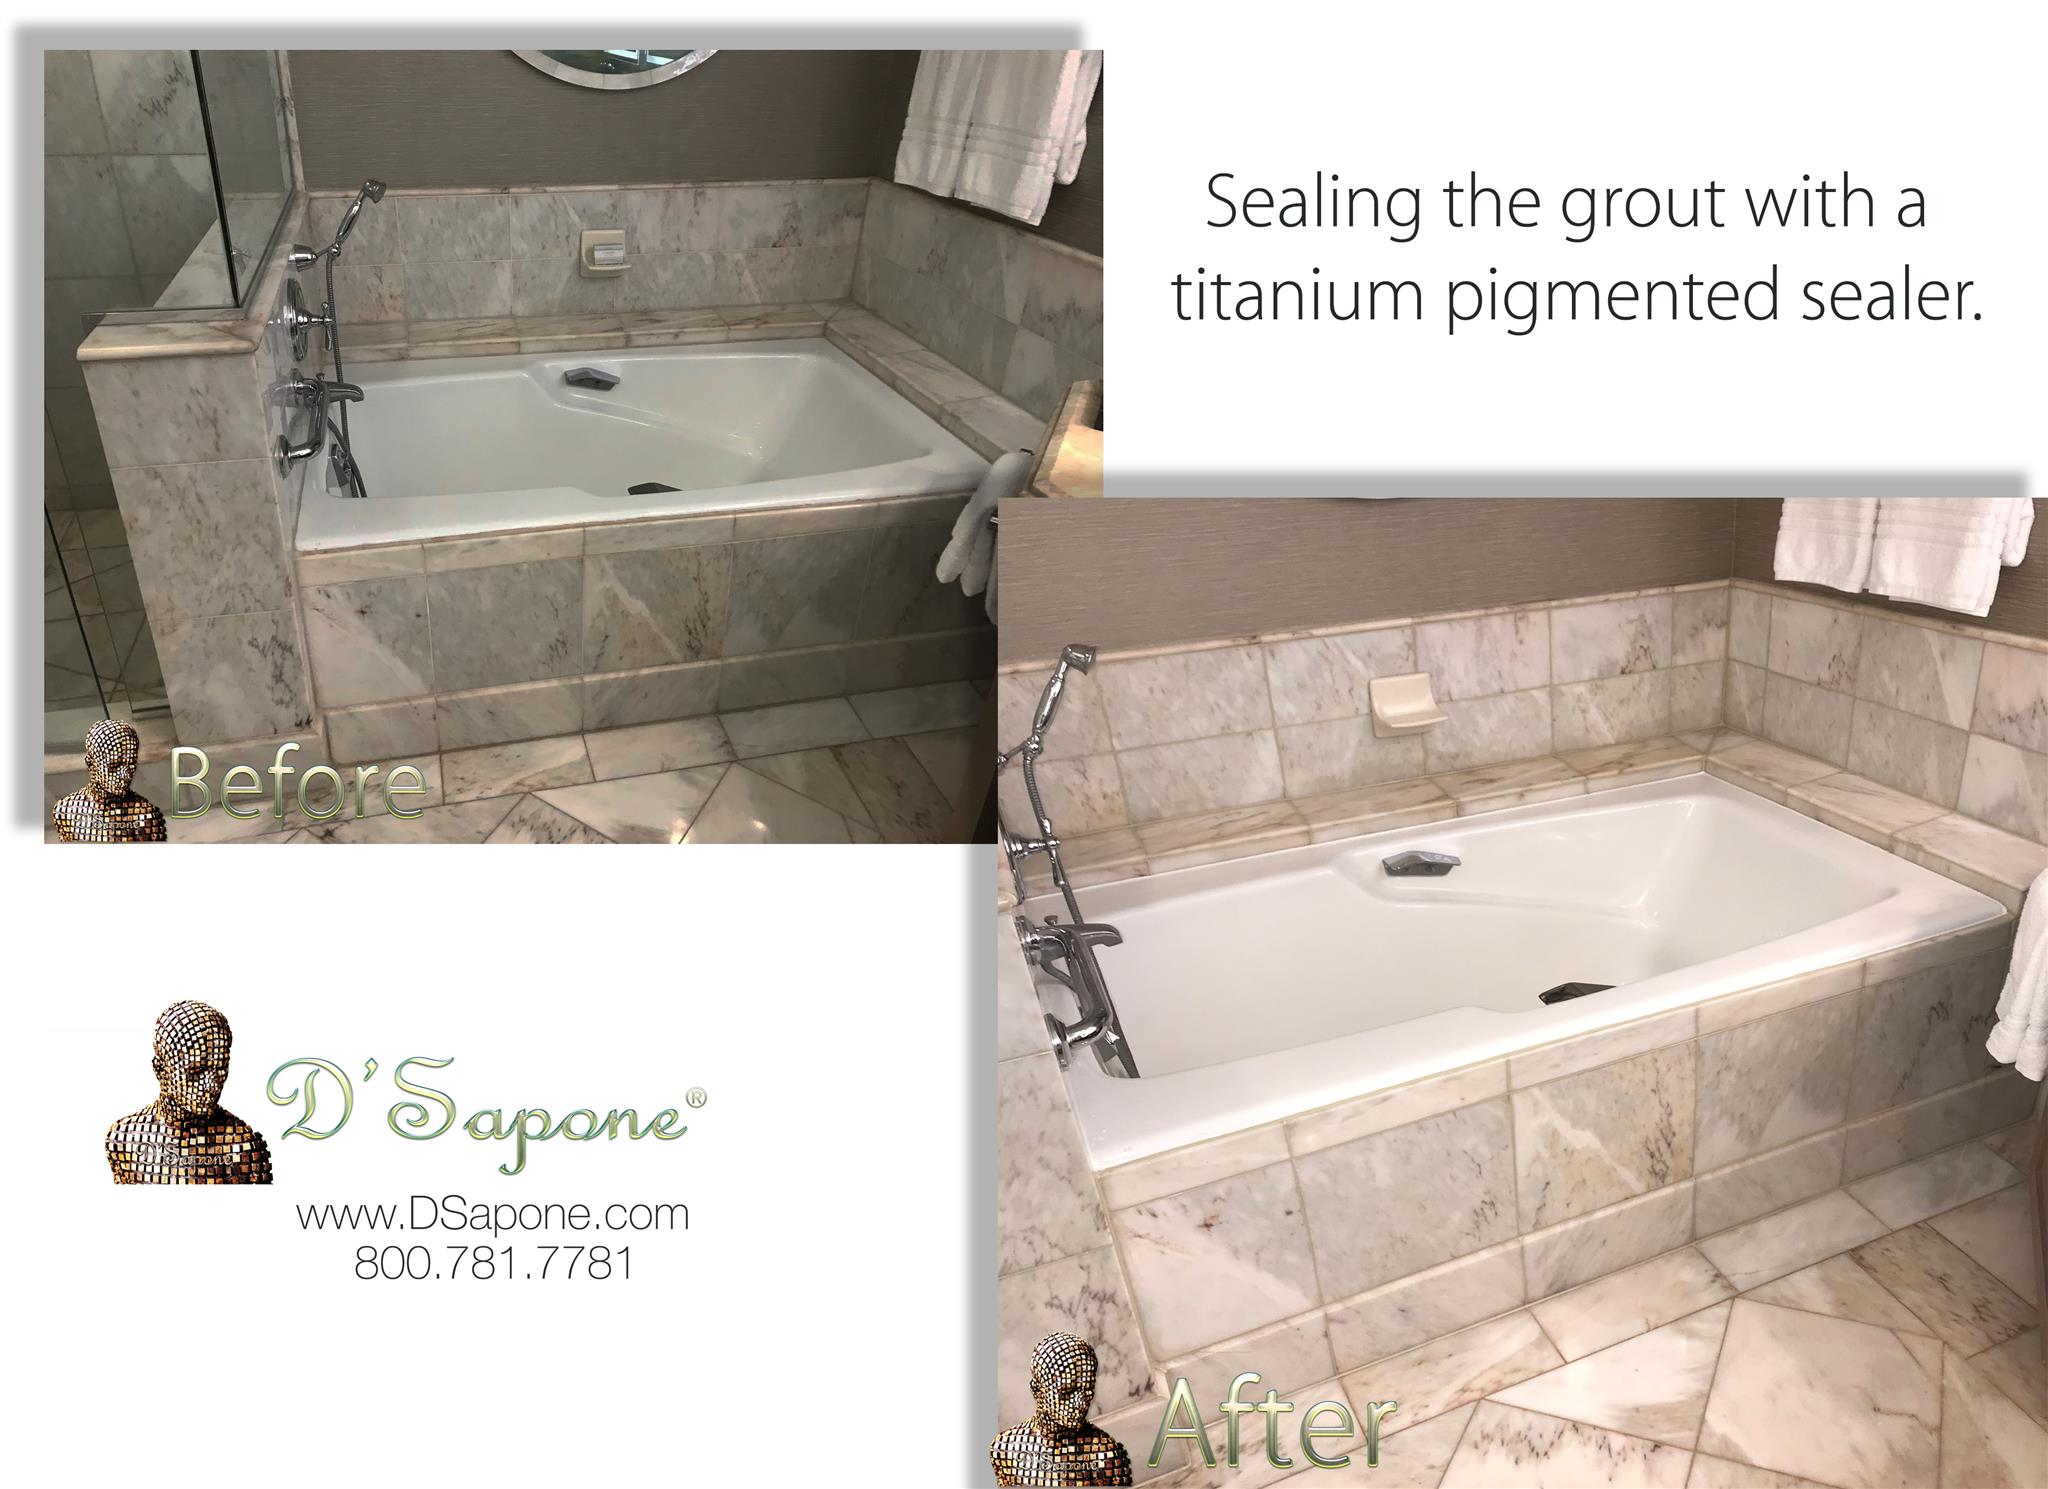 Tile and Grout Restoration in California